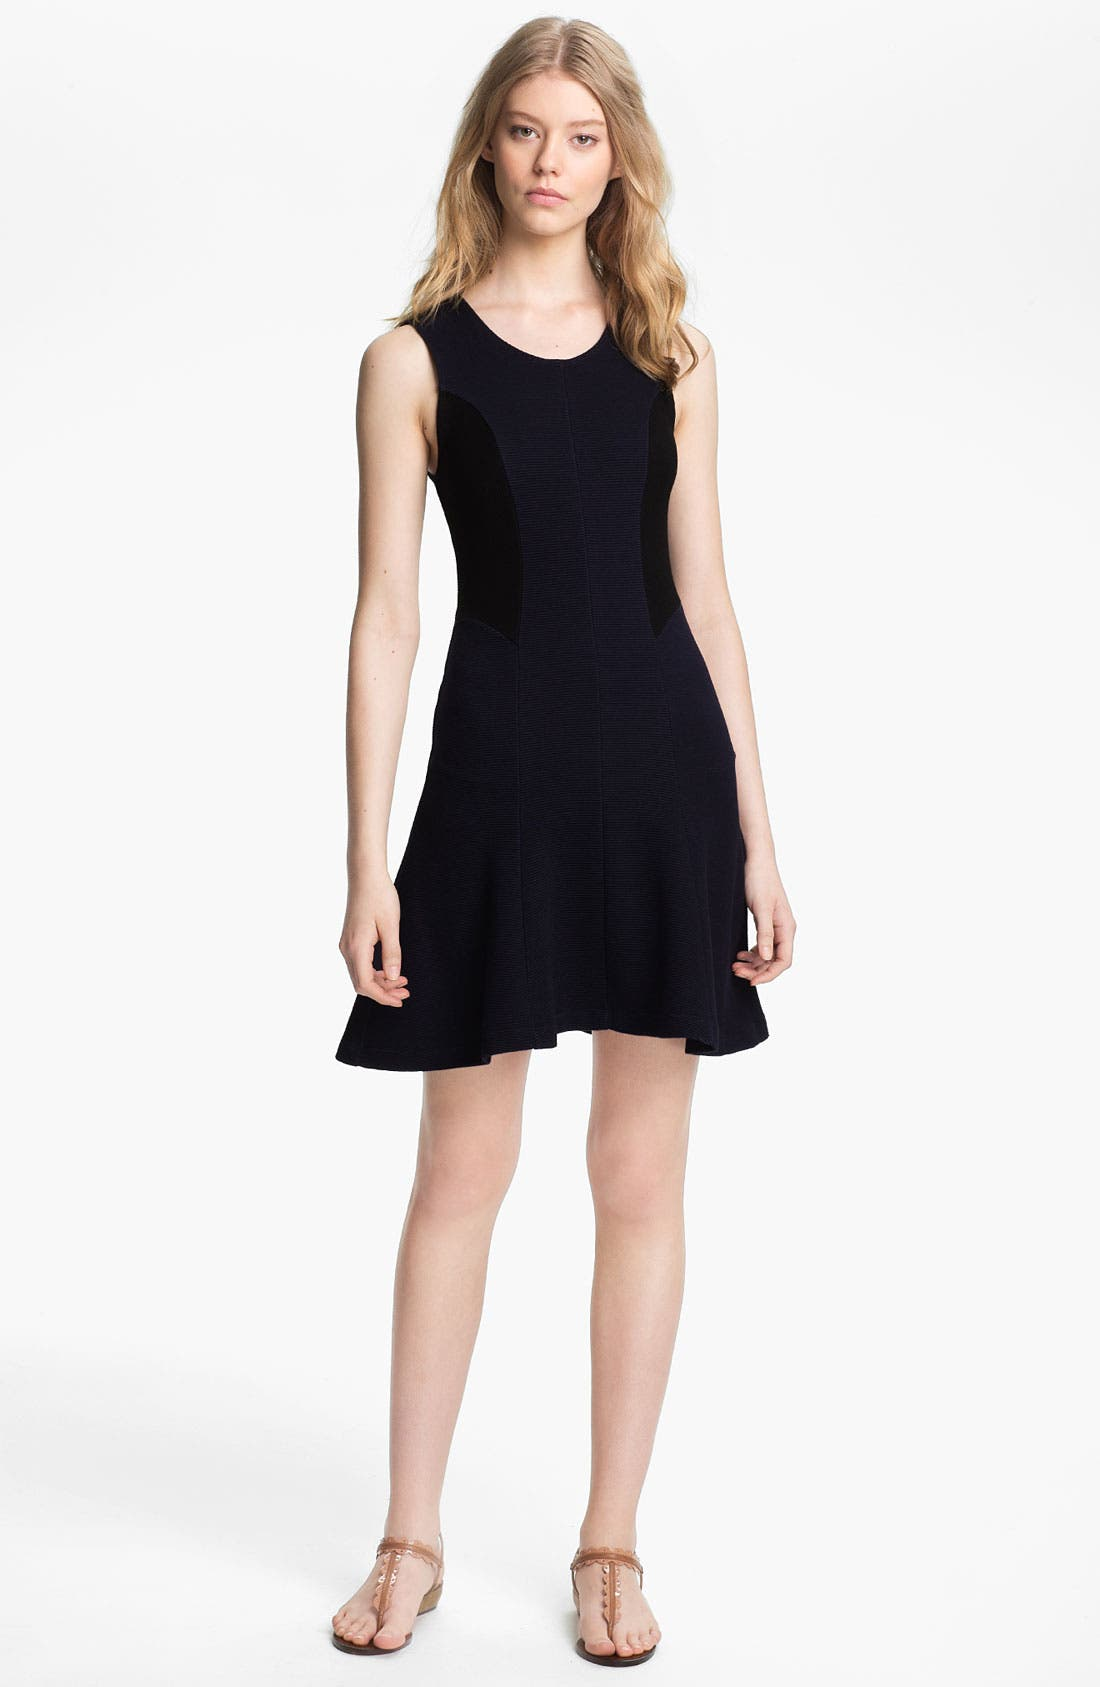 Main Image - Kain 'Viveka' Contrast Panel Dress